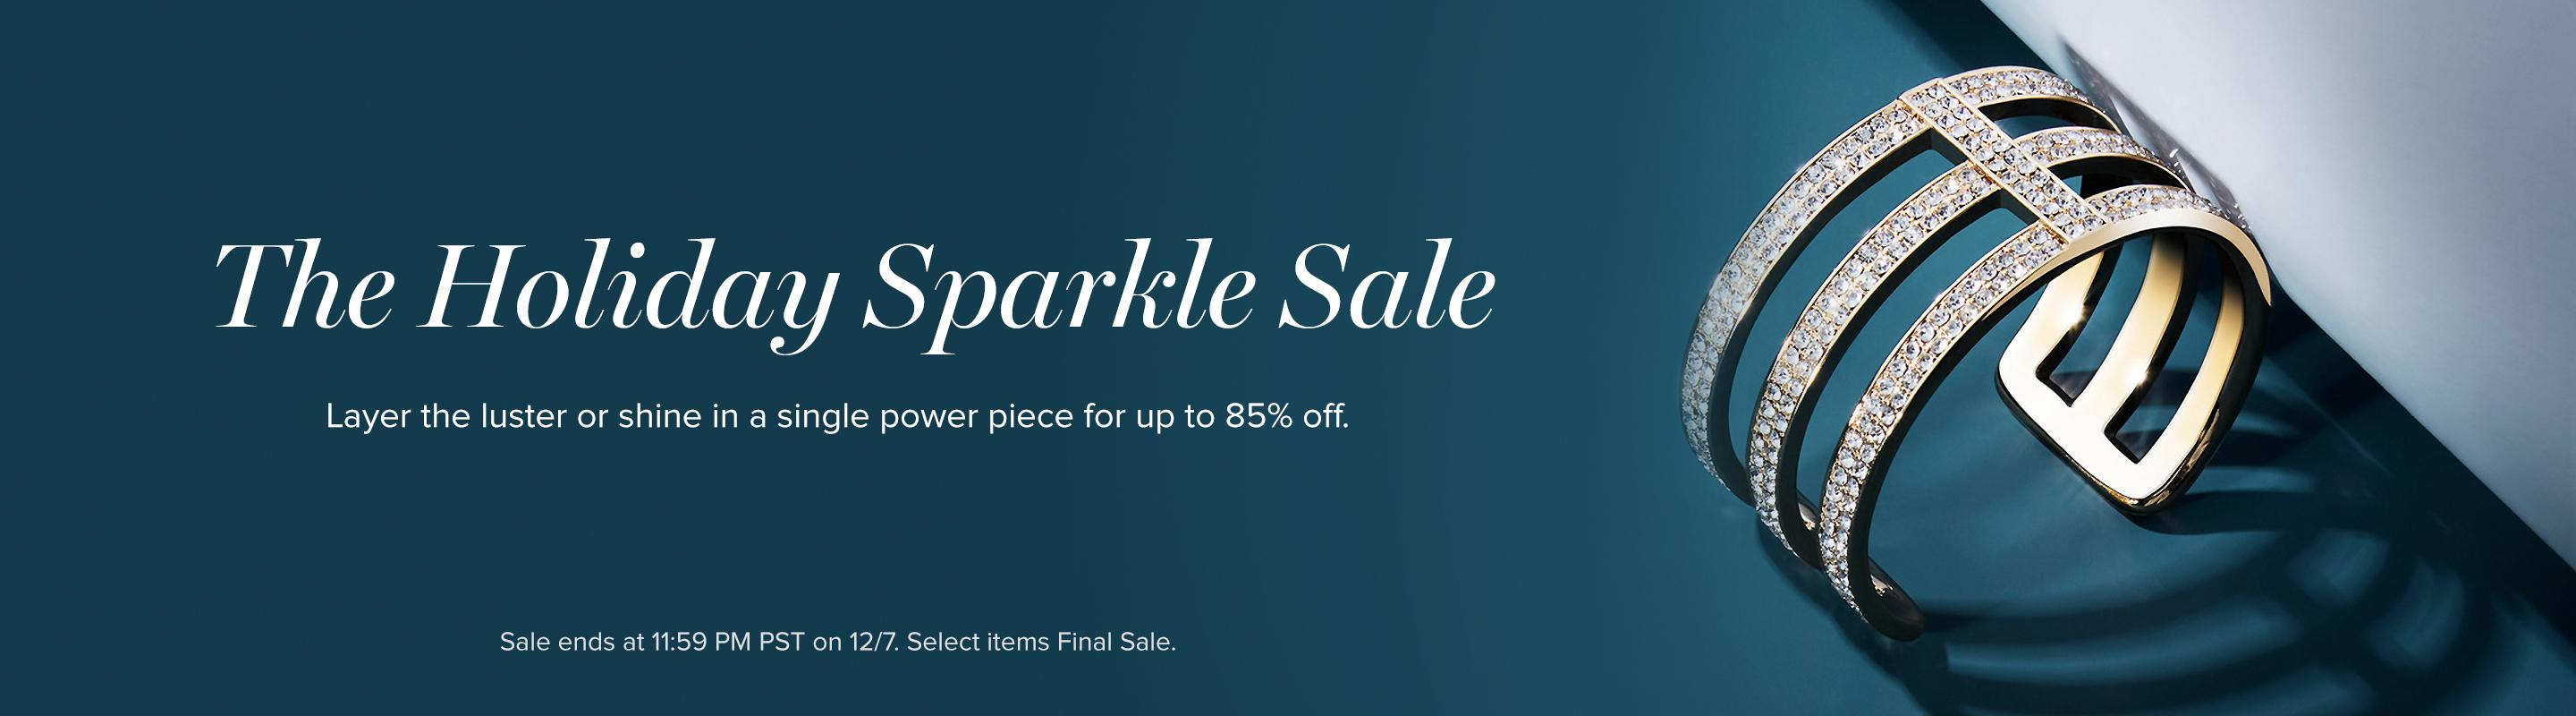 The Holiday Sparkle Sale